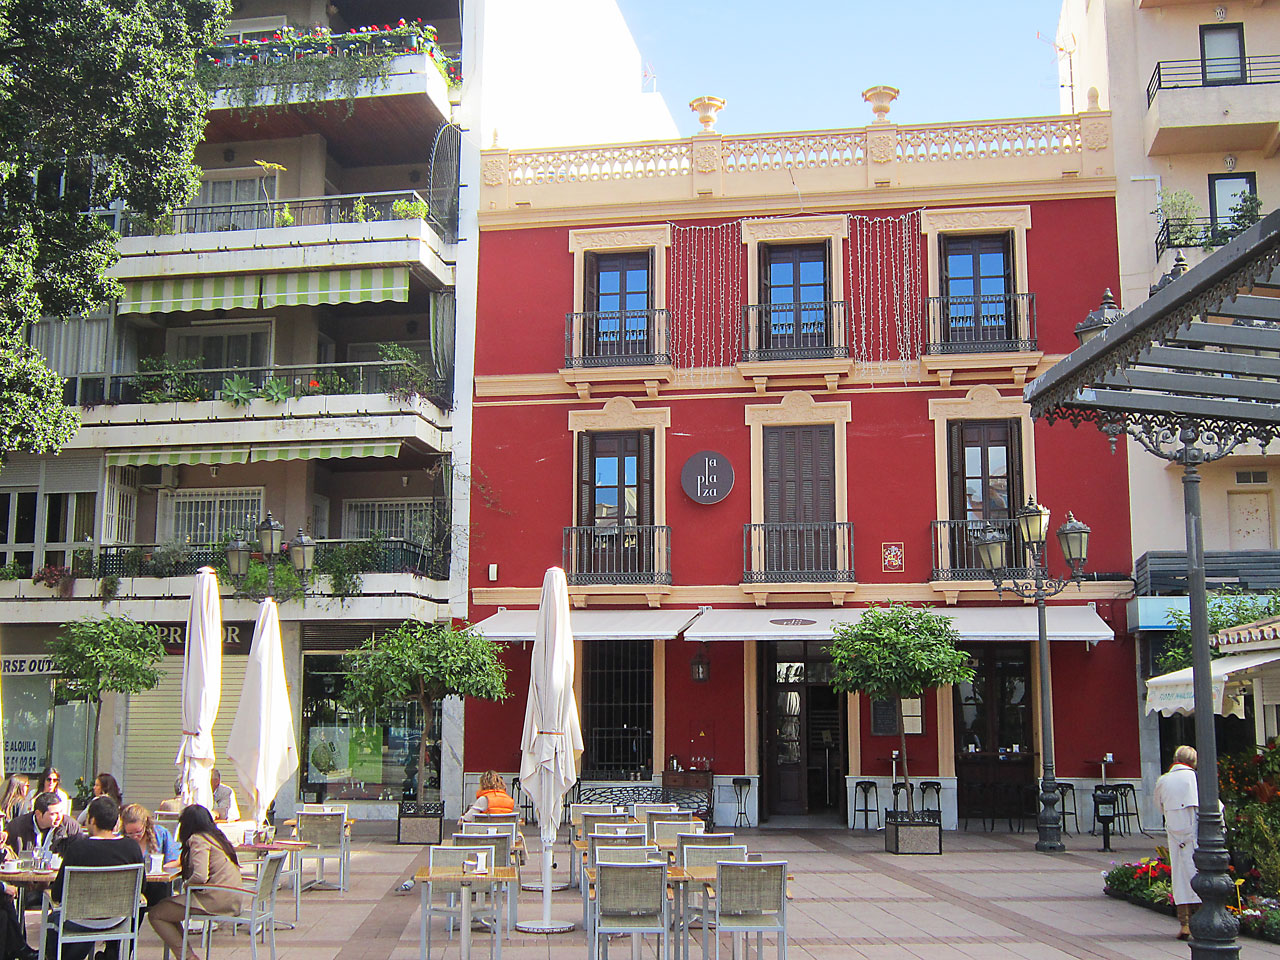 Plaza de la Constitution with its many eateries, cafes and bars